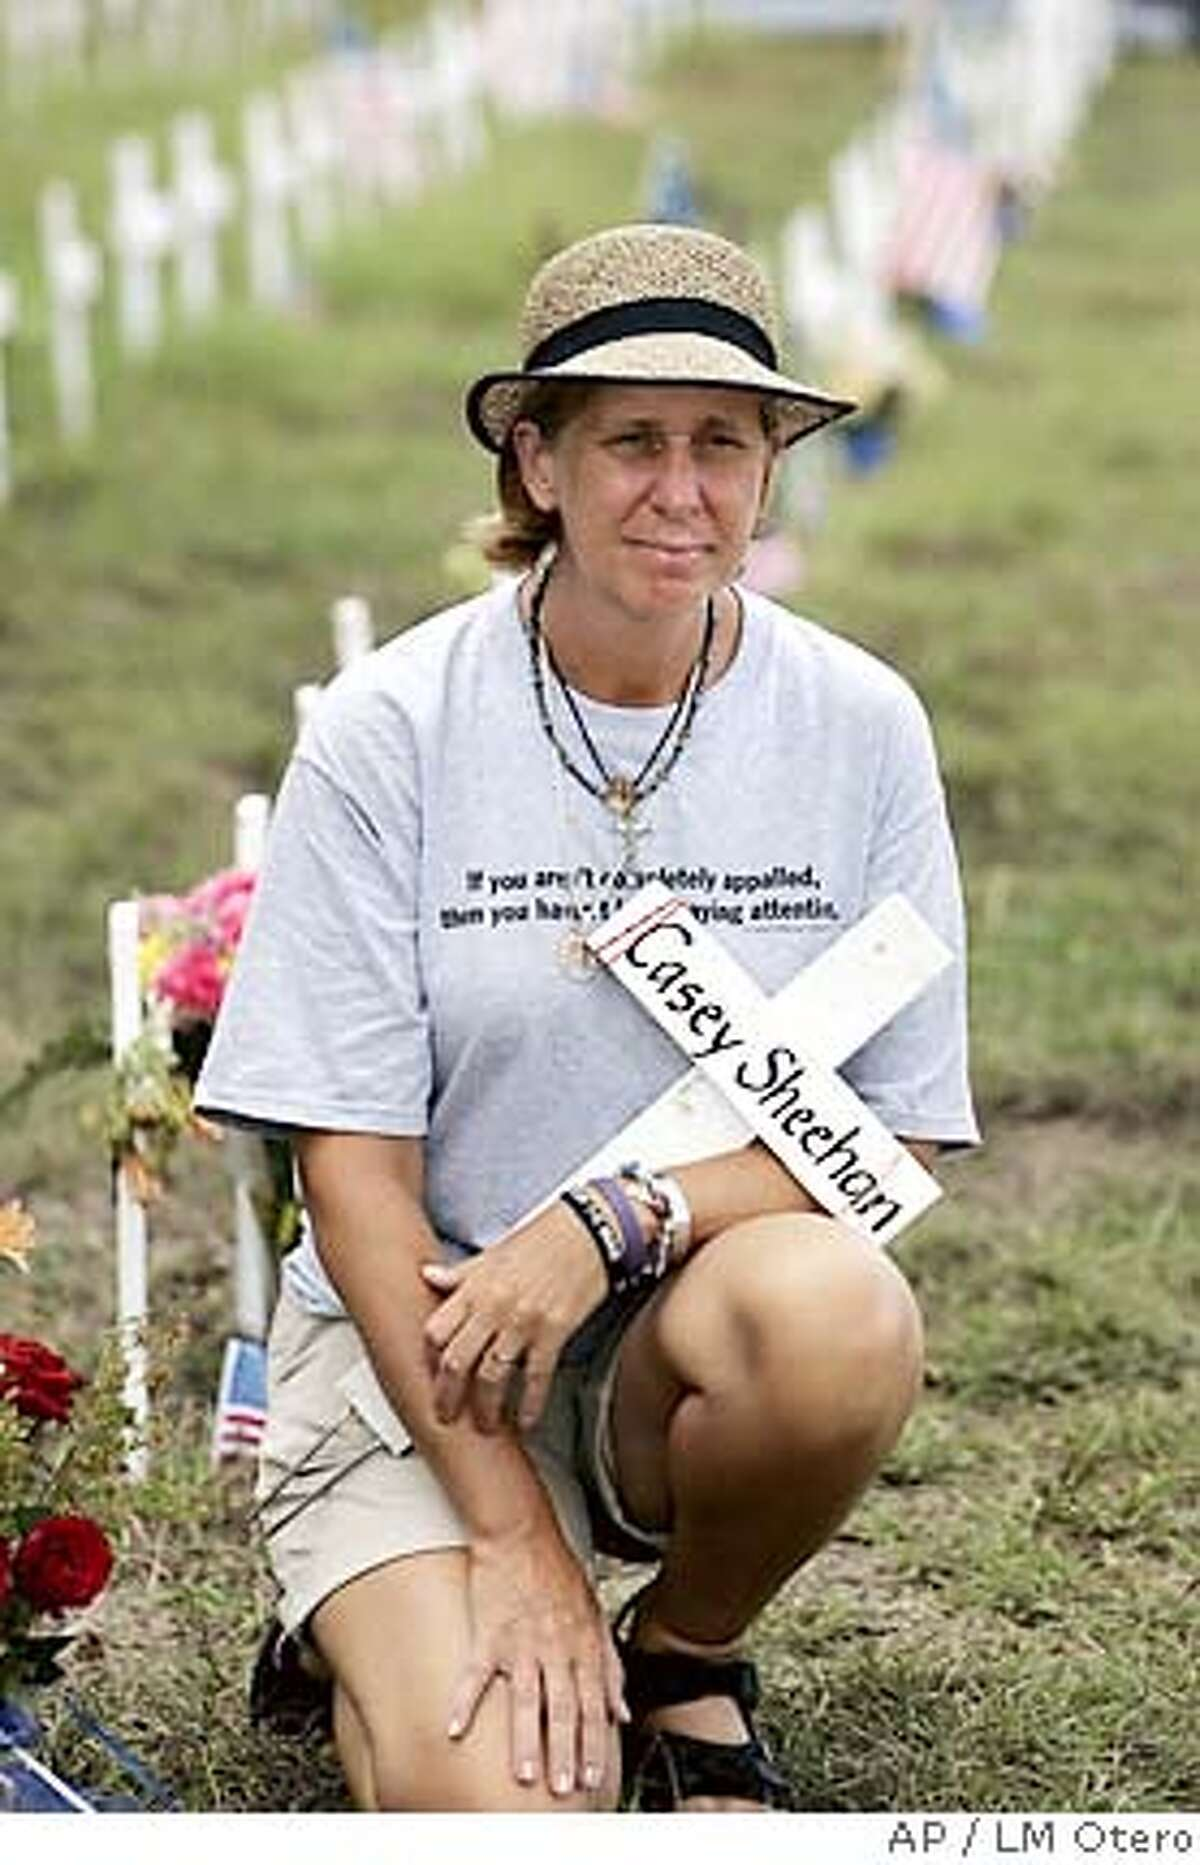 Cindy Sheehan poses for a magazine at her camp on the side of the road leading to President Bush's ranch near Crawford, Texas, Monday, Aug. 15, 2005. Sheehan's vigil to meet with President Bush is entering its' second week. Shehanwhose son CAsey died in Iraq said she will continue her anti-war demonstration for three more wee. (AP Photo/LM Otero) Op-Ed#Op-Ed#Chronicle#8/16/2005#ALL#5star#B6#0423177646 Ran on: 08-16-2005 Cindy Sheehan poses near a row of crosses lining the road to President Bushs Crawford, Texas, ranch. Ran on: 08-16-2005 Cindy Sheehan poses on the side of the road leading to President Bushs ranch. Ran on: 08-16-2005 Cindy Sheehan poses on the side of the road leading to President Bushs ranch.